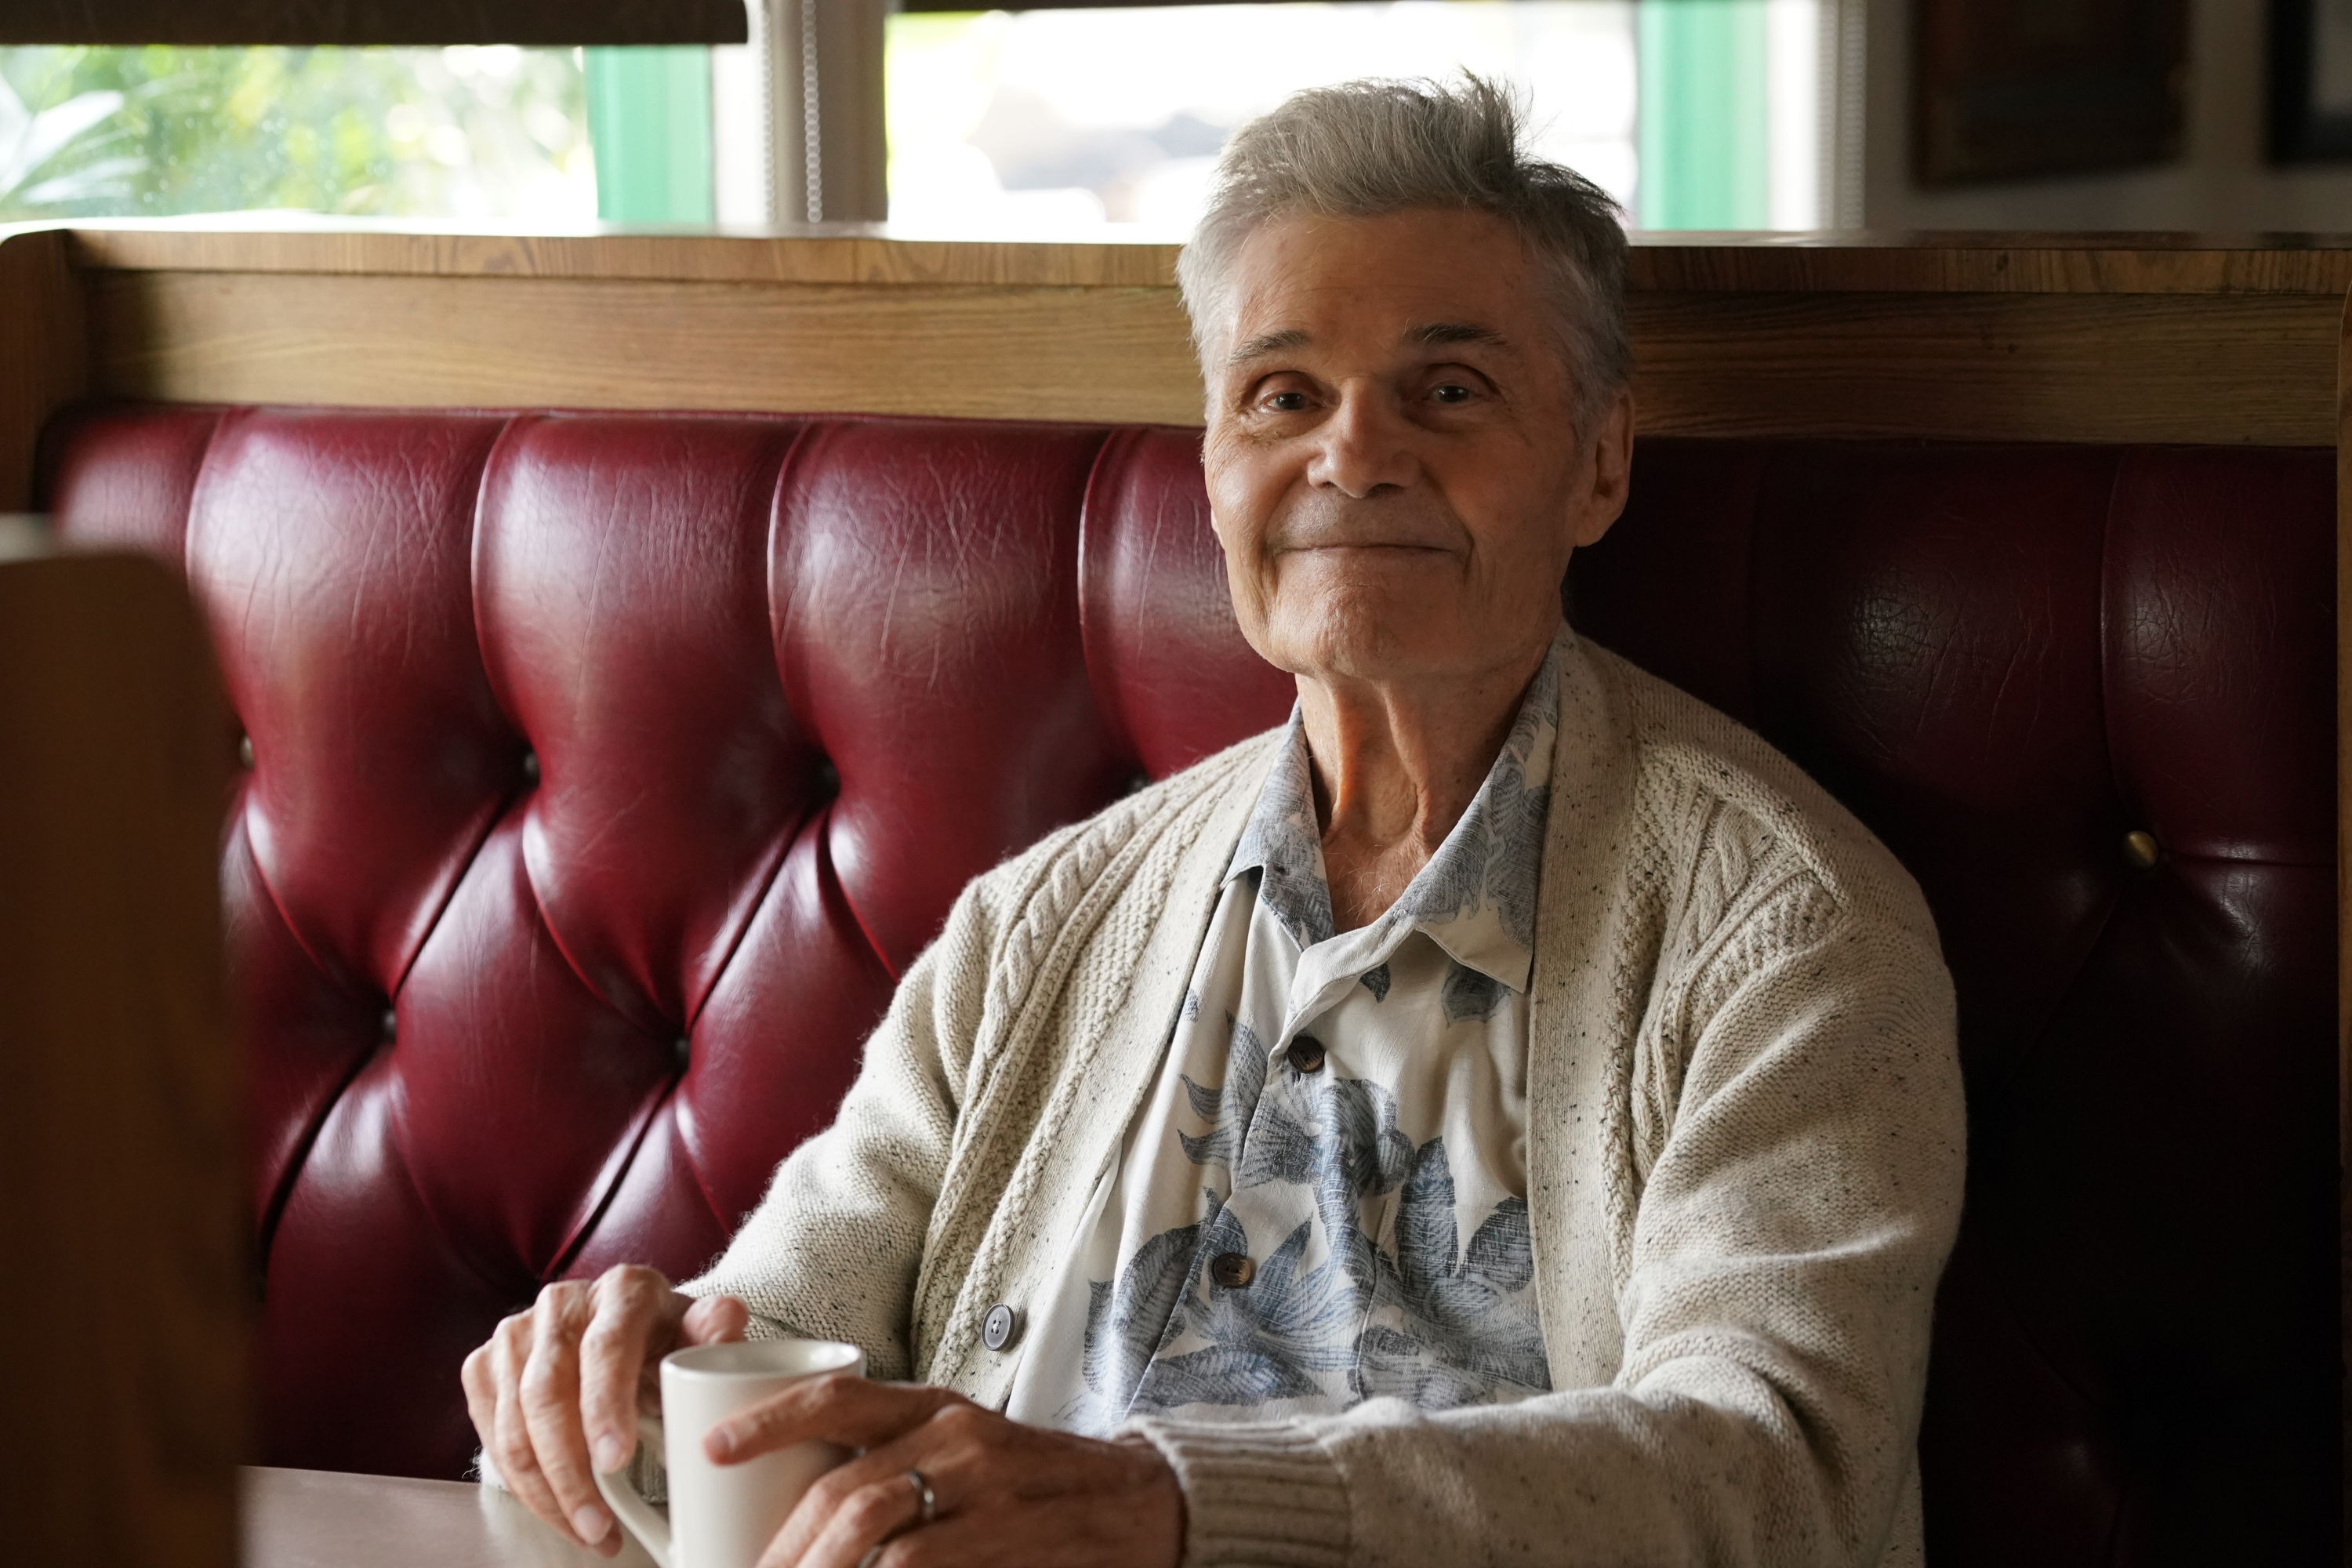 Recalling Fred Willard's legacy in commercials